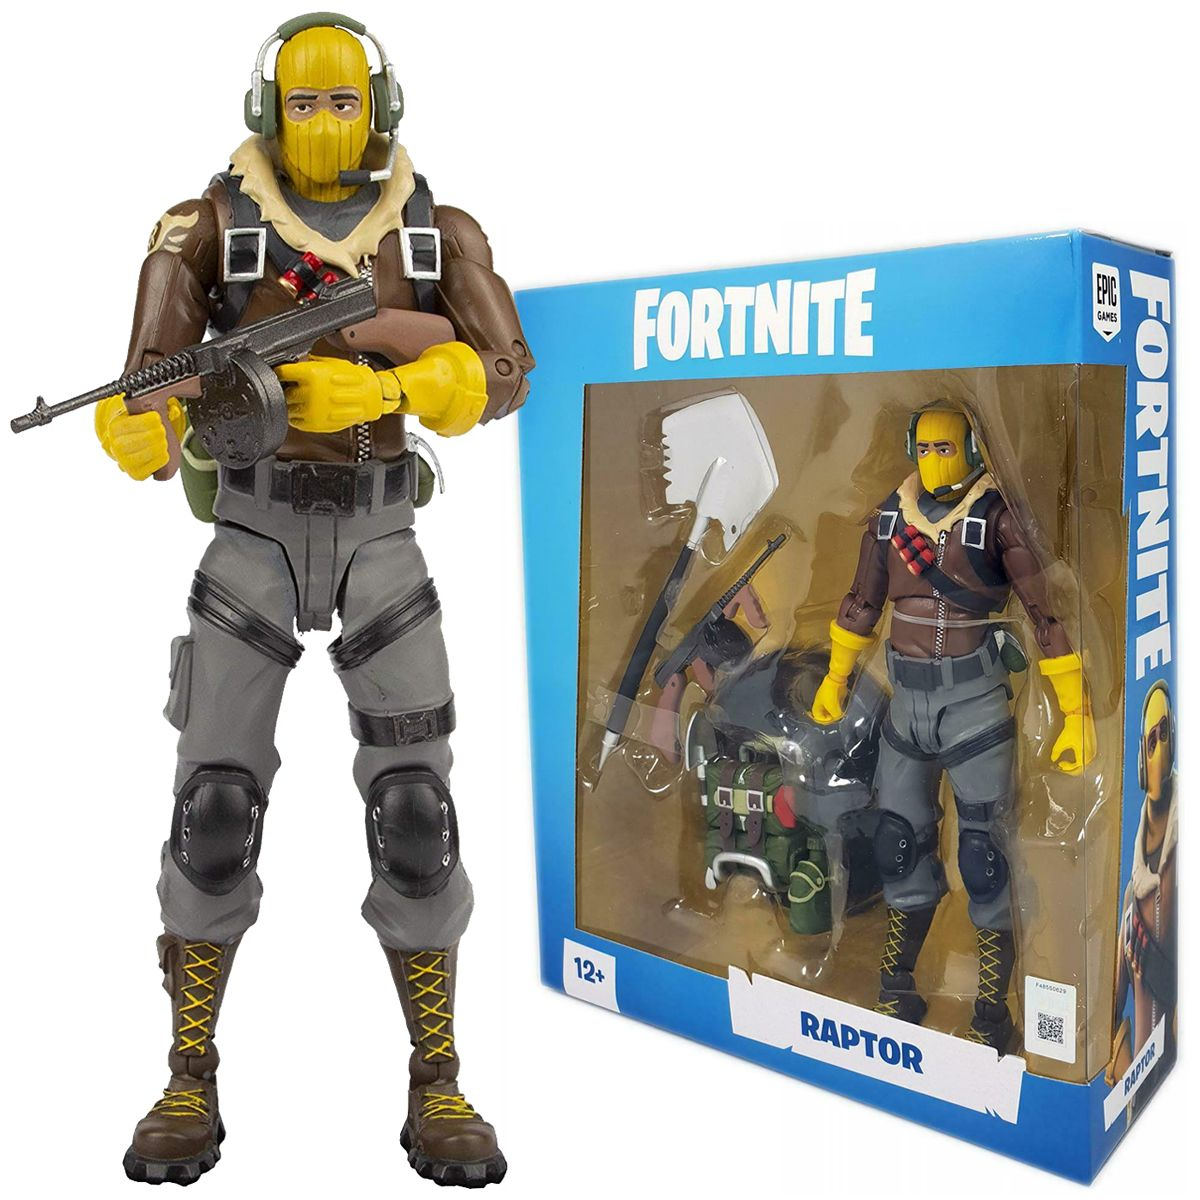 Raptor Fortnite série McFarlane Toys 1 action figure